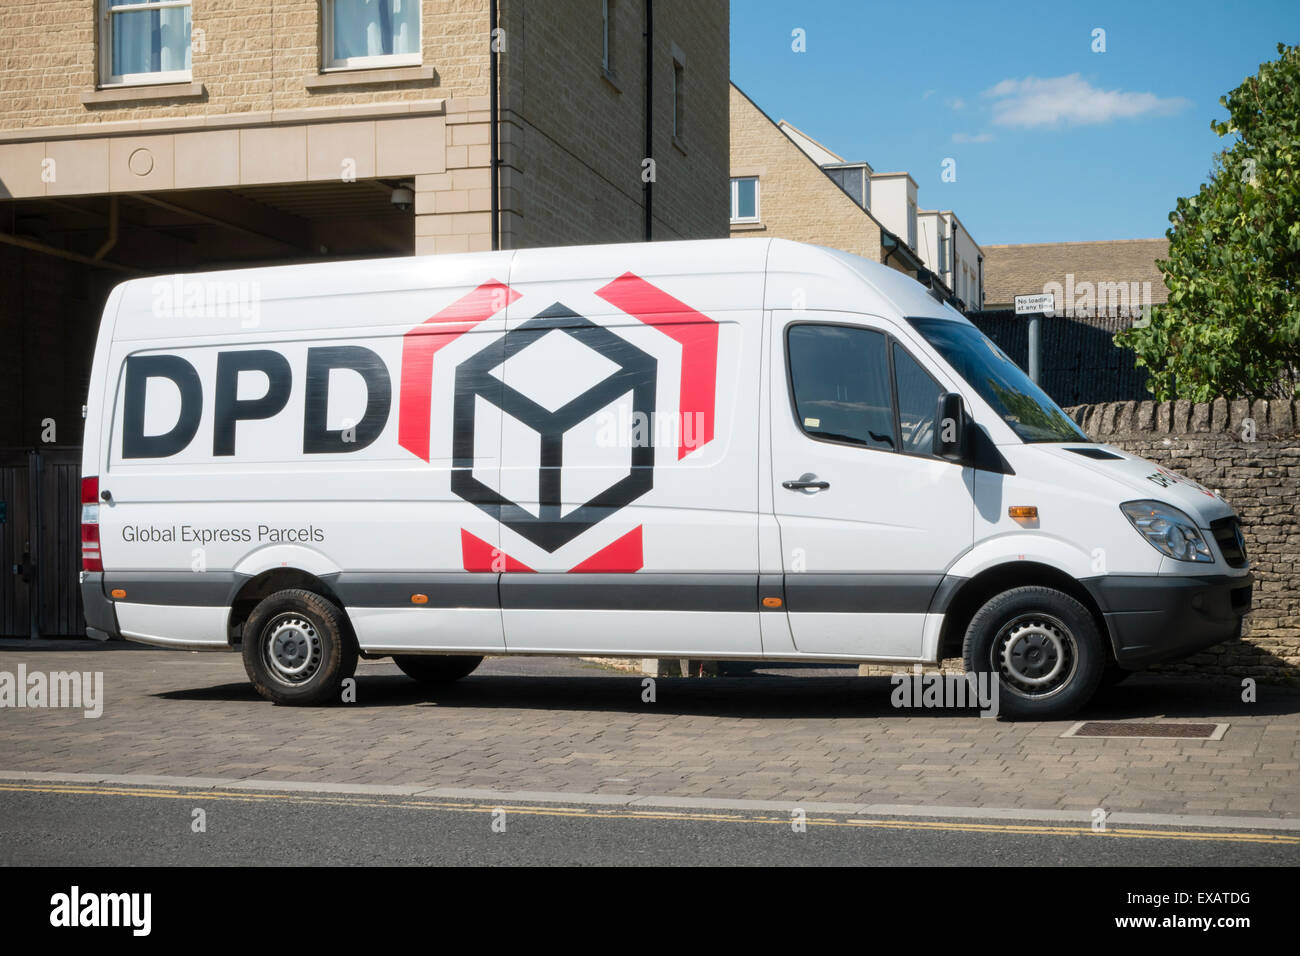 DPD parcel van, UK. - Stock Image